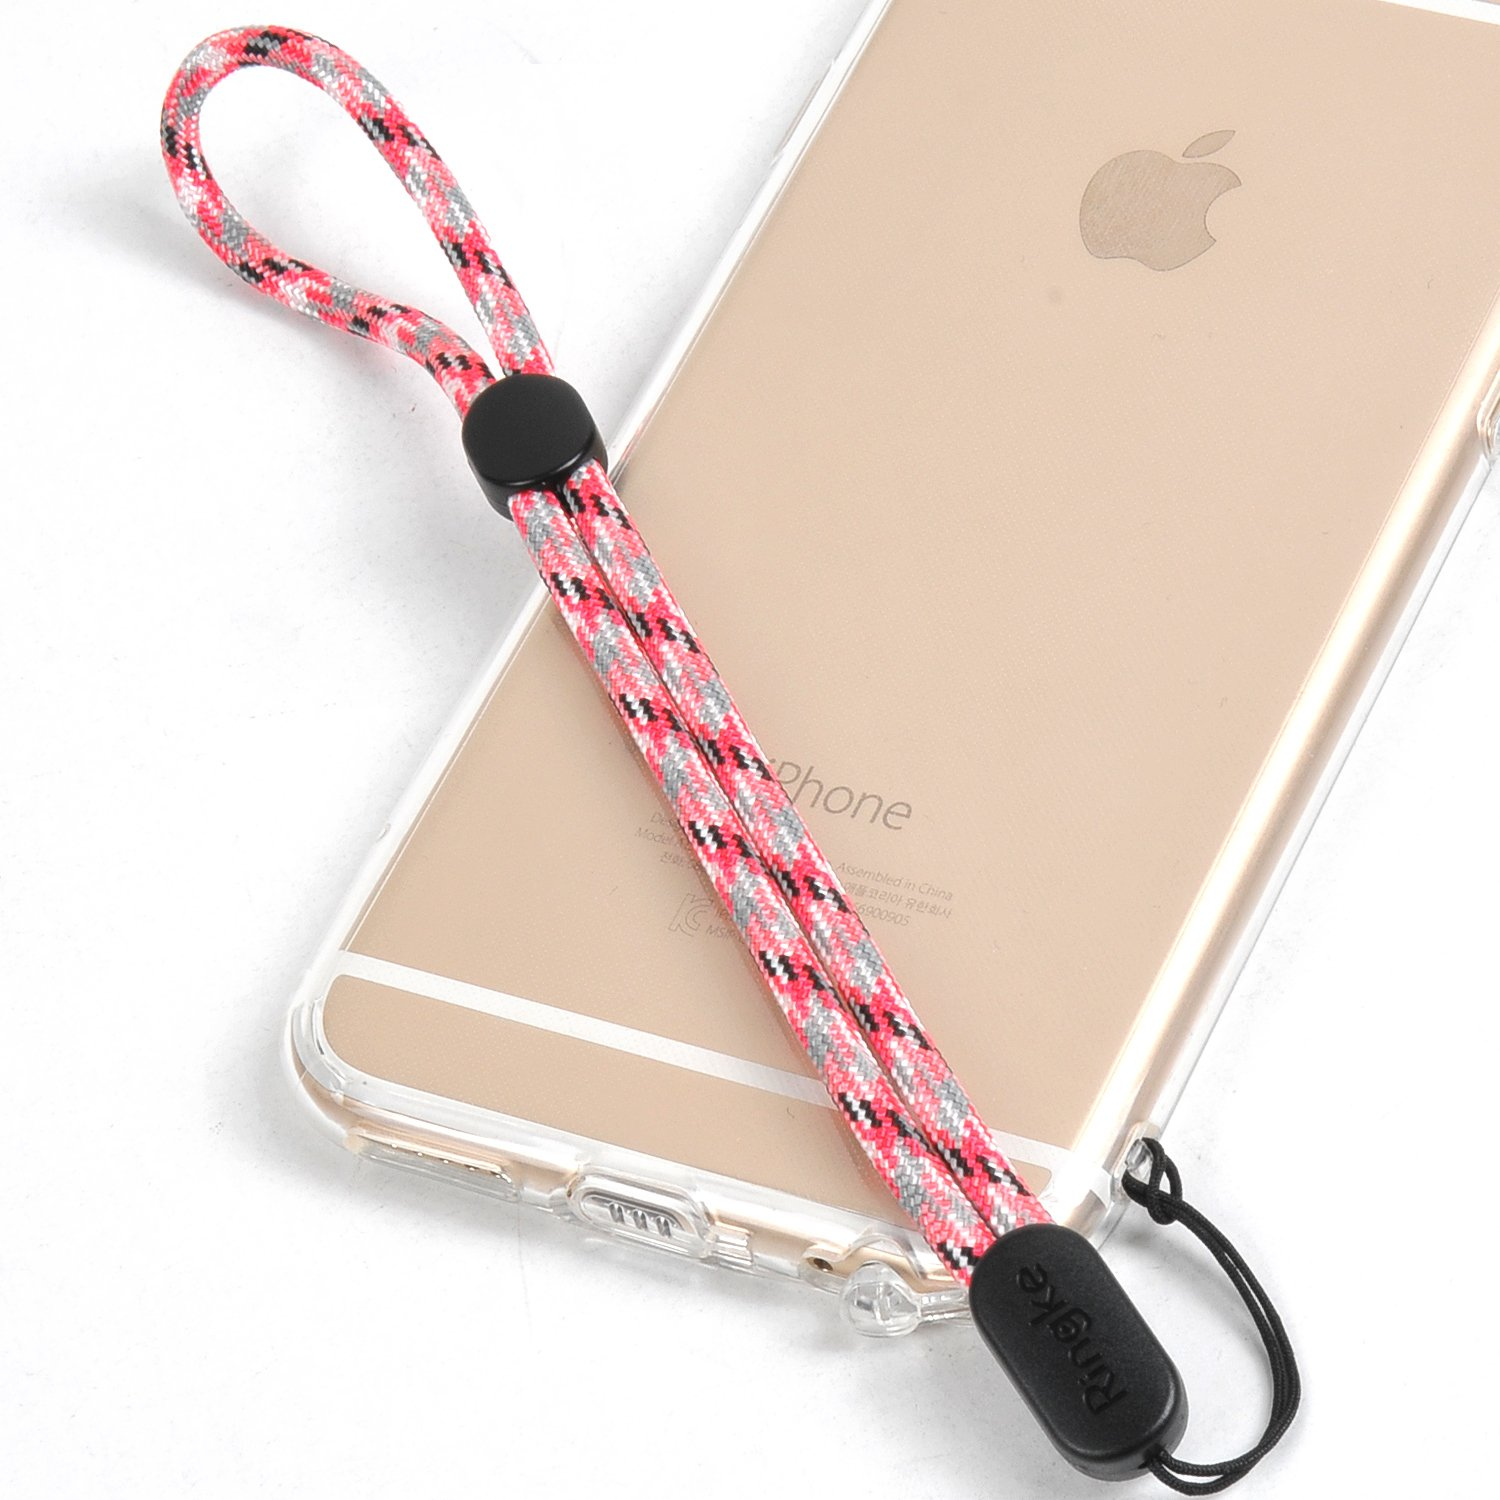 Varsity Red Pixel 3 XL 8 Plus LG G7 ThinQ Ringke Lanyard Wrist Strap 2PACK Huawei USB Compatible with Cases for iPhone Xs Max 8 Xperia Galaxy Note 9 S9 Plus etc V40 ThinQ X Oneplus